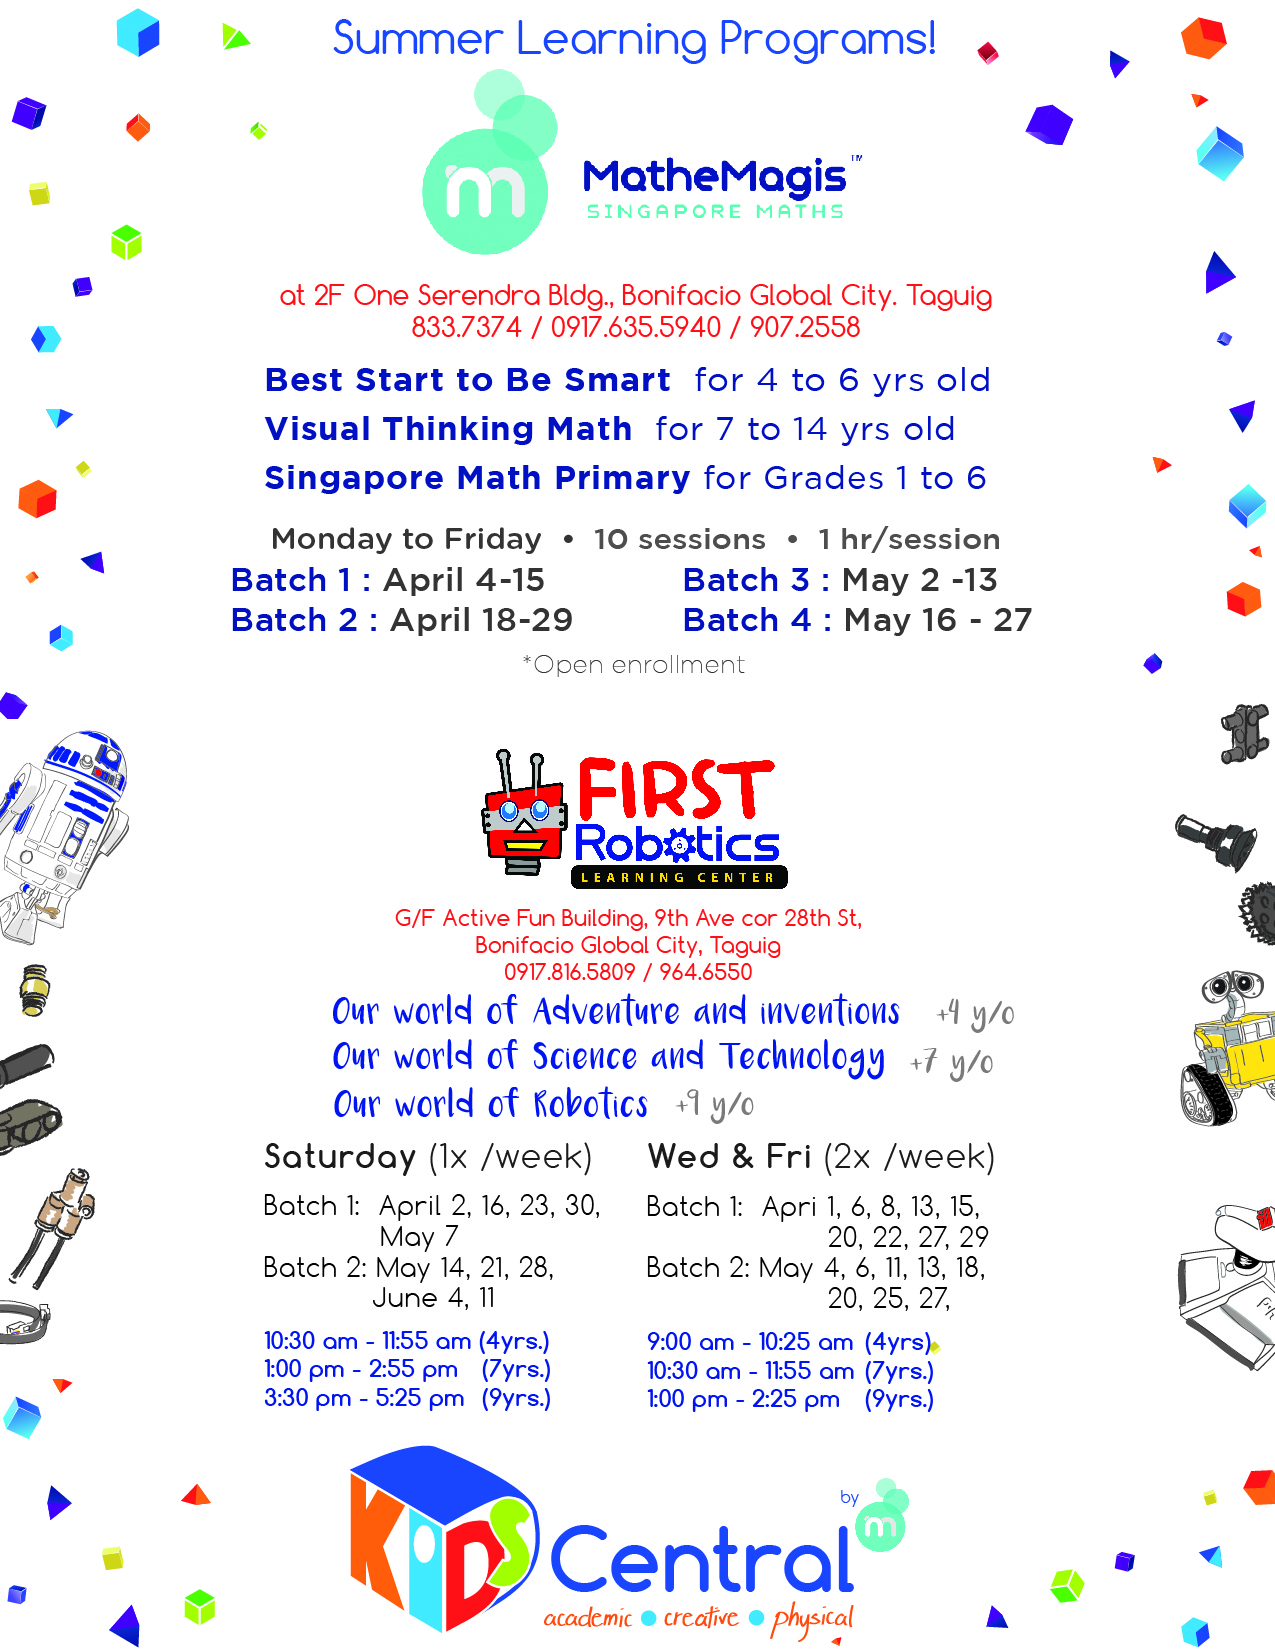 FIRST ROBOTICS @ Kids Central POSTER-BGC